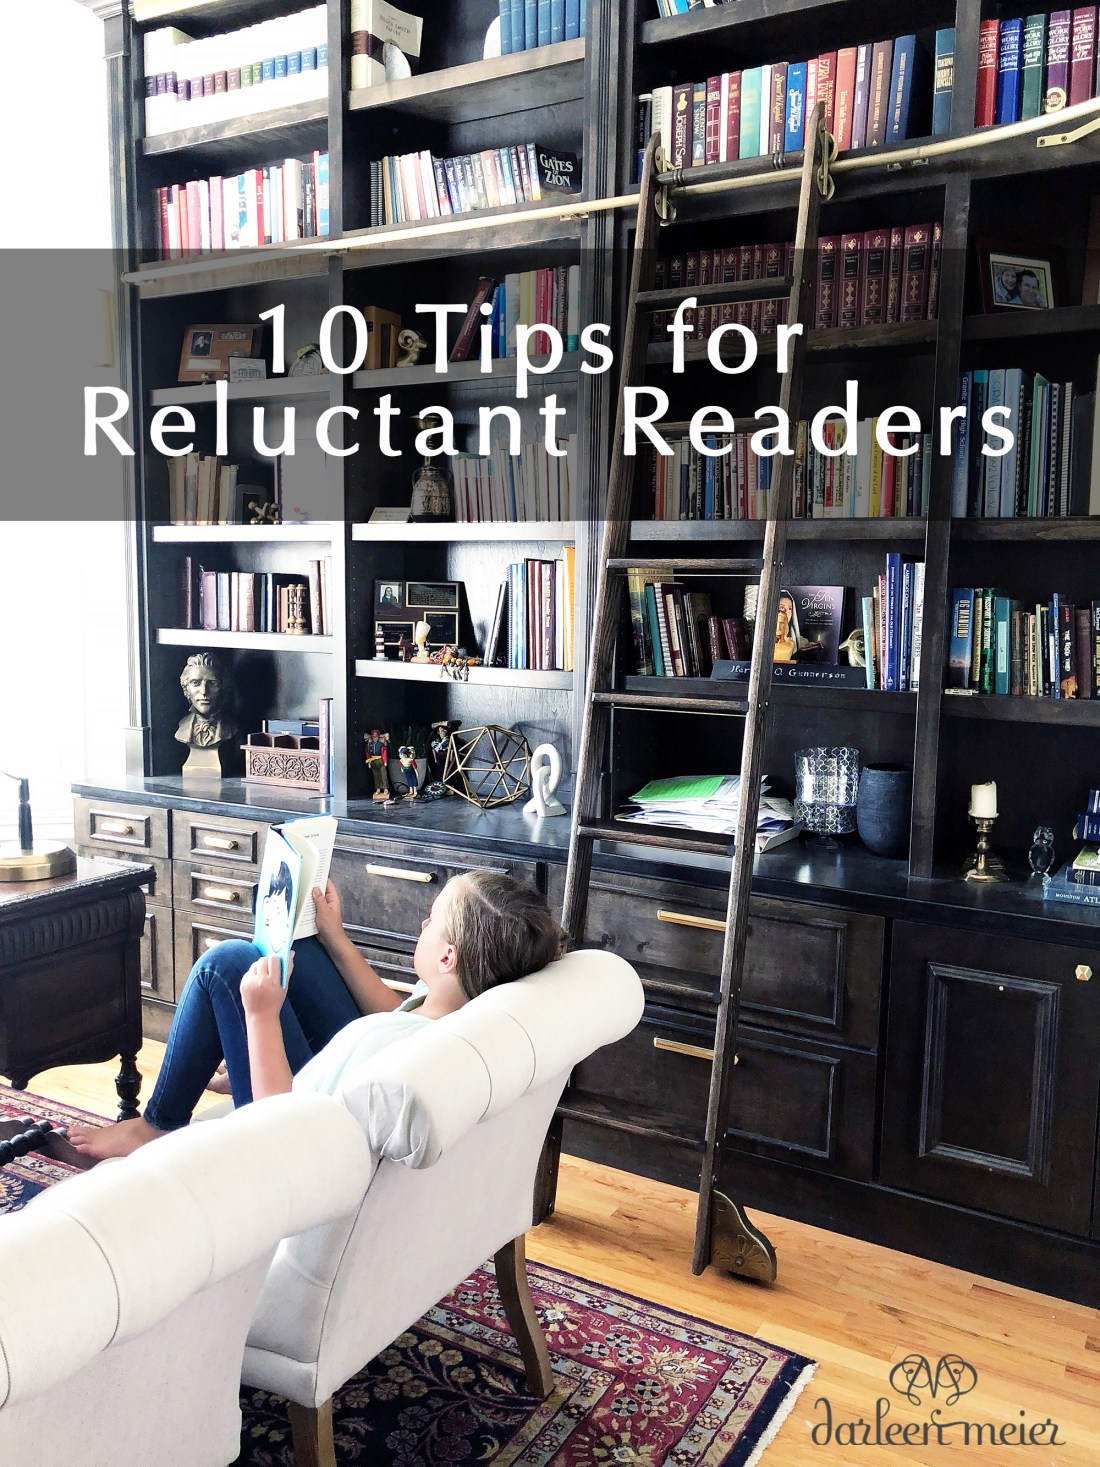 Do you have a child that has no interest in reading? Well I had a child like that and I've learned a few things! Sharing 10 Tips for Reluctant Readers that all moms could take something away || Darling Darleen #darlingdarleen #darleenmeier #reluctantreaders